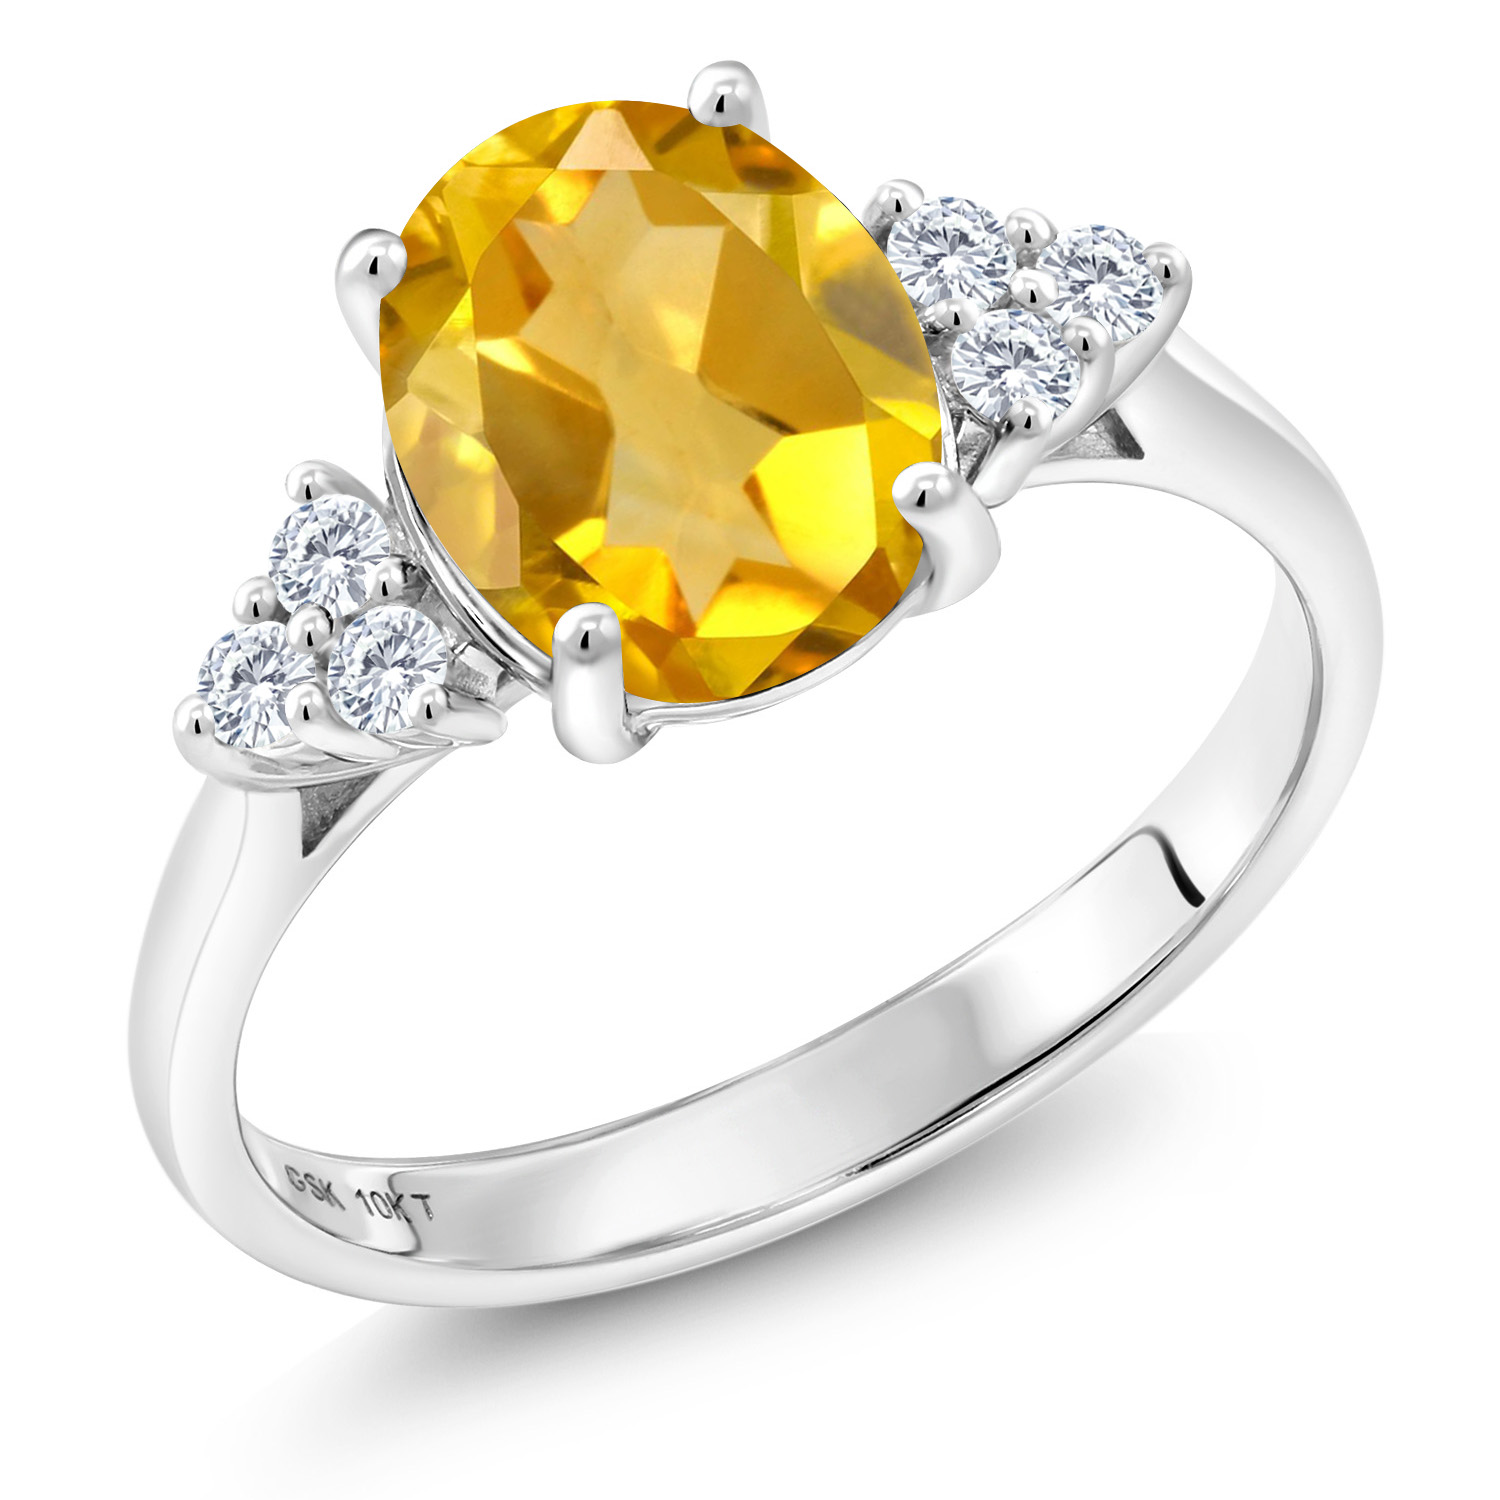 10K White gold 1.62 Ct Oval Yellow Citrine G H Lab Grown Diamond Accent Ring